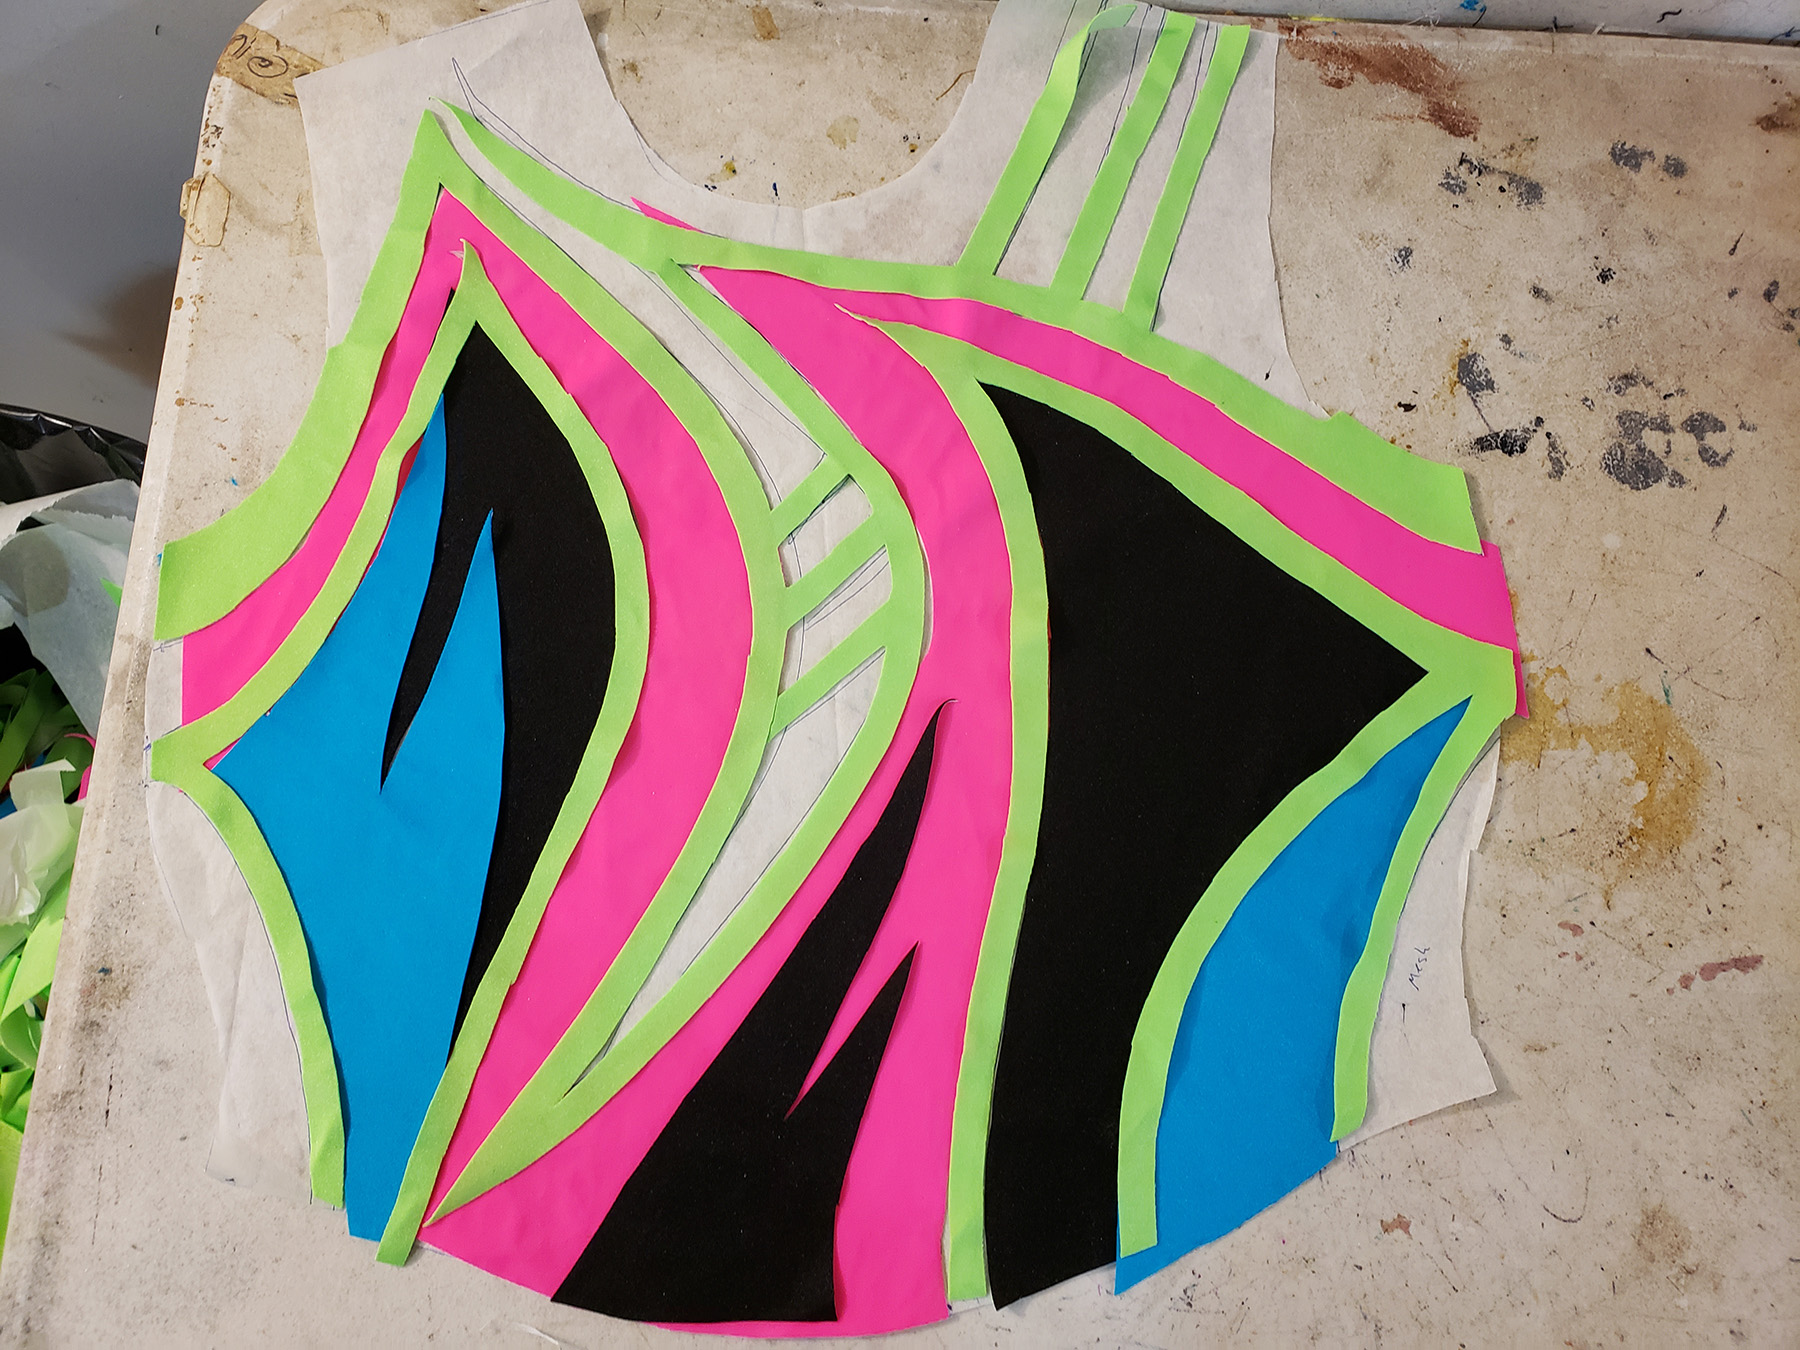 Applique pieces for the front of an 80s style skating dress are laid out on top of the master pattern.